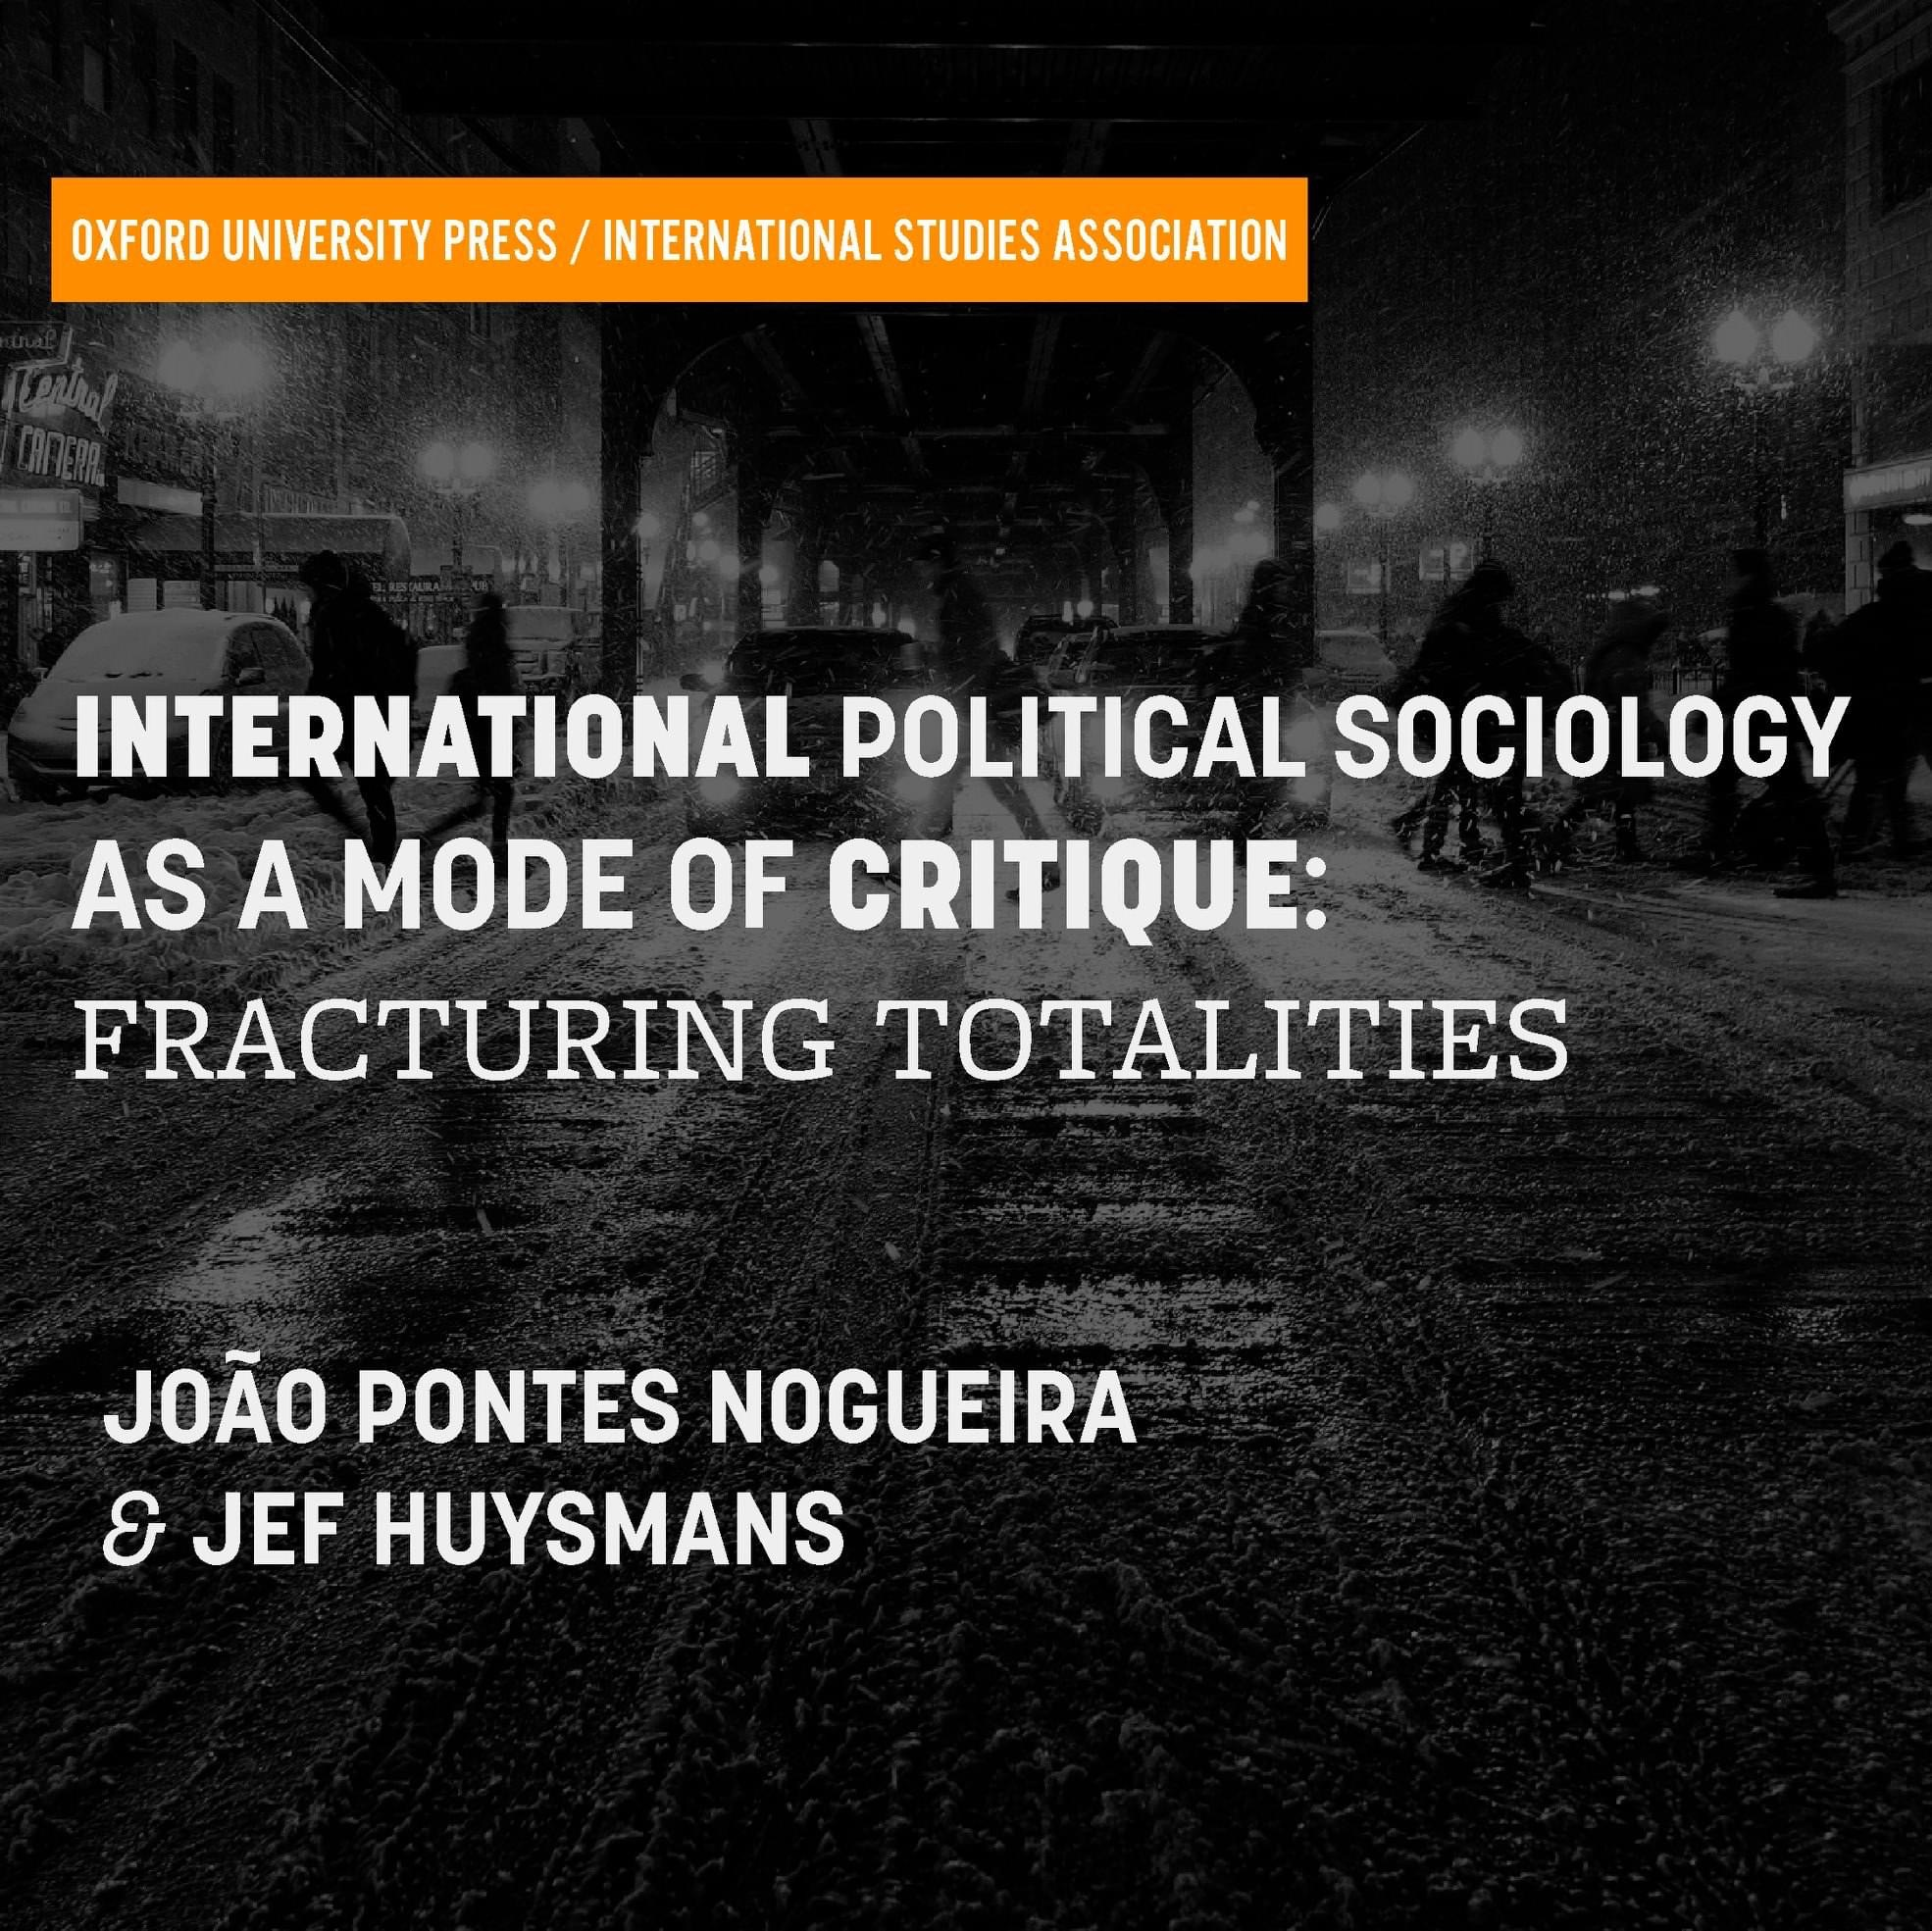 International Political Sociology as a Mode of Critique: Fracturing Totalities